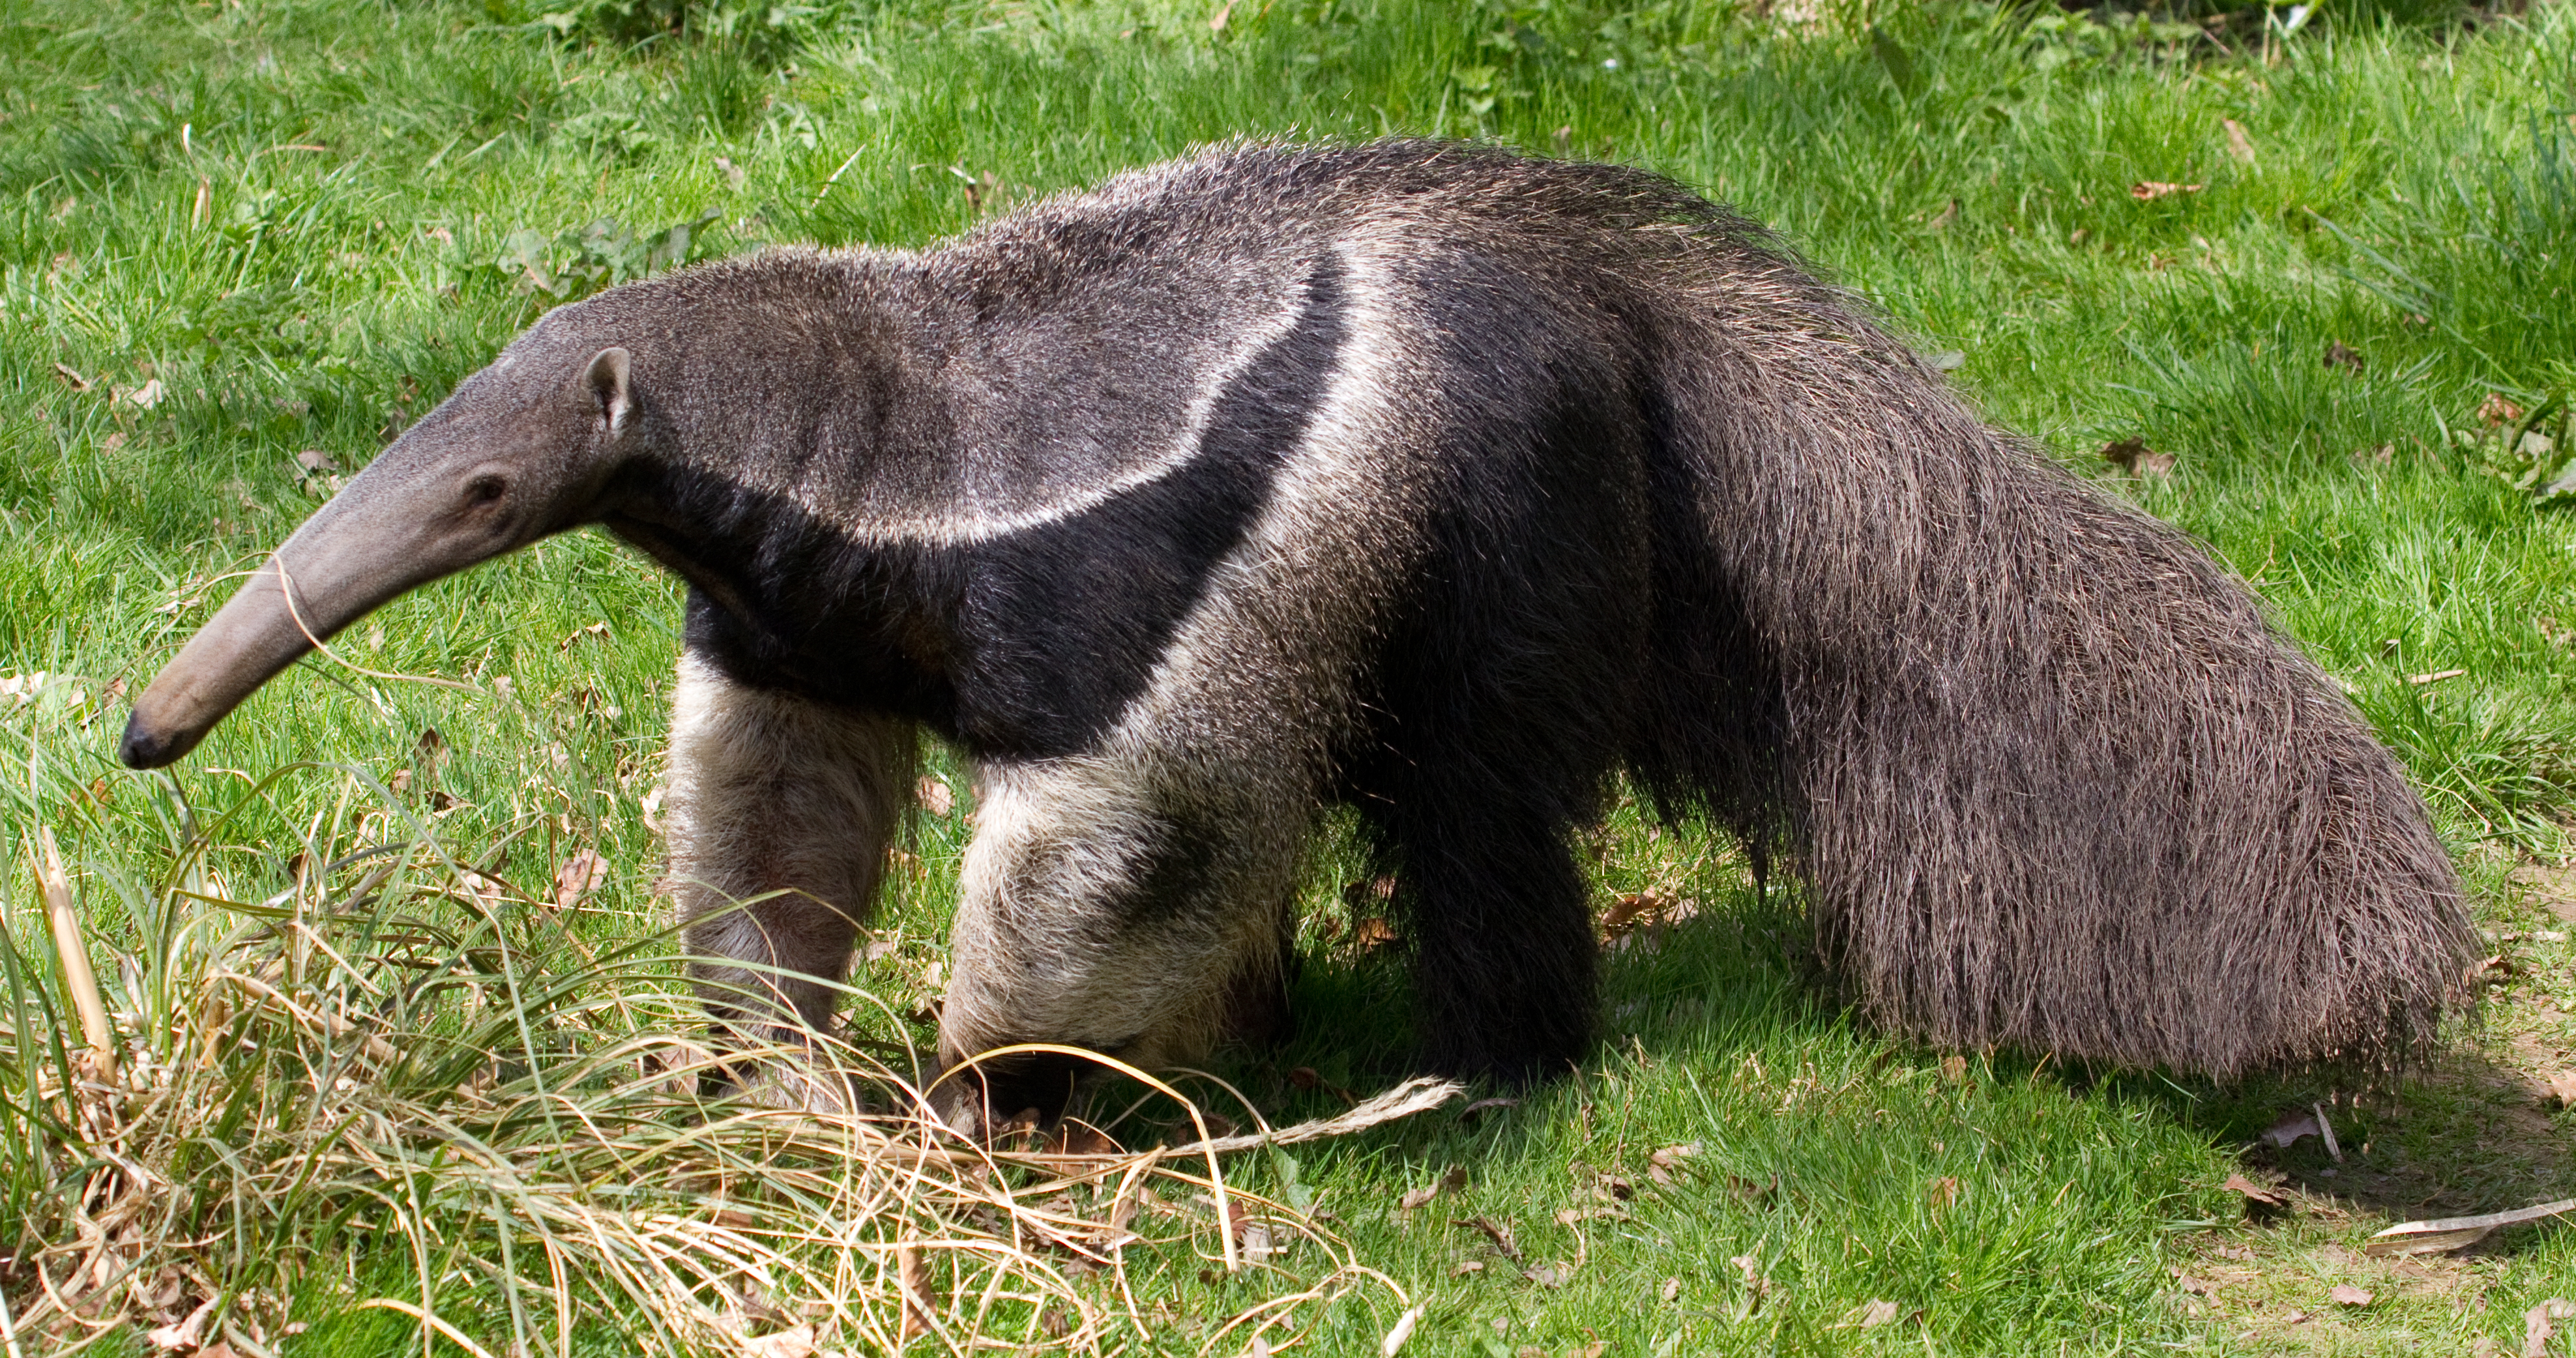 Tropical rainforest anteaters